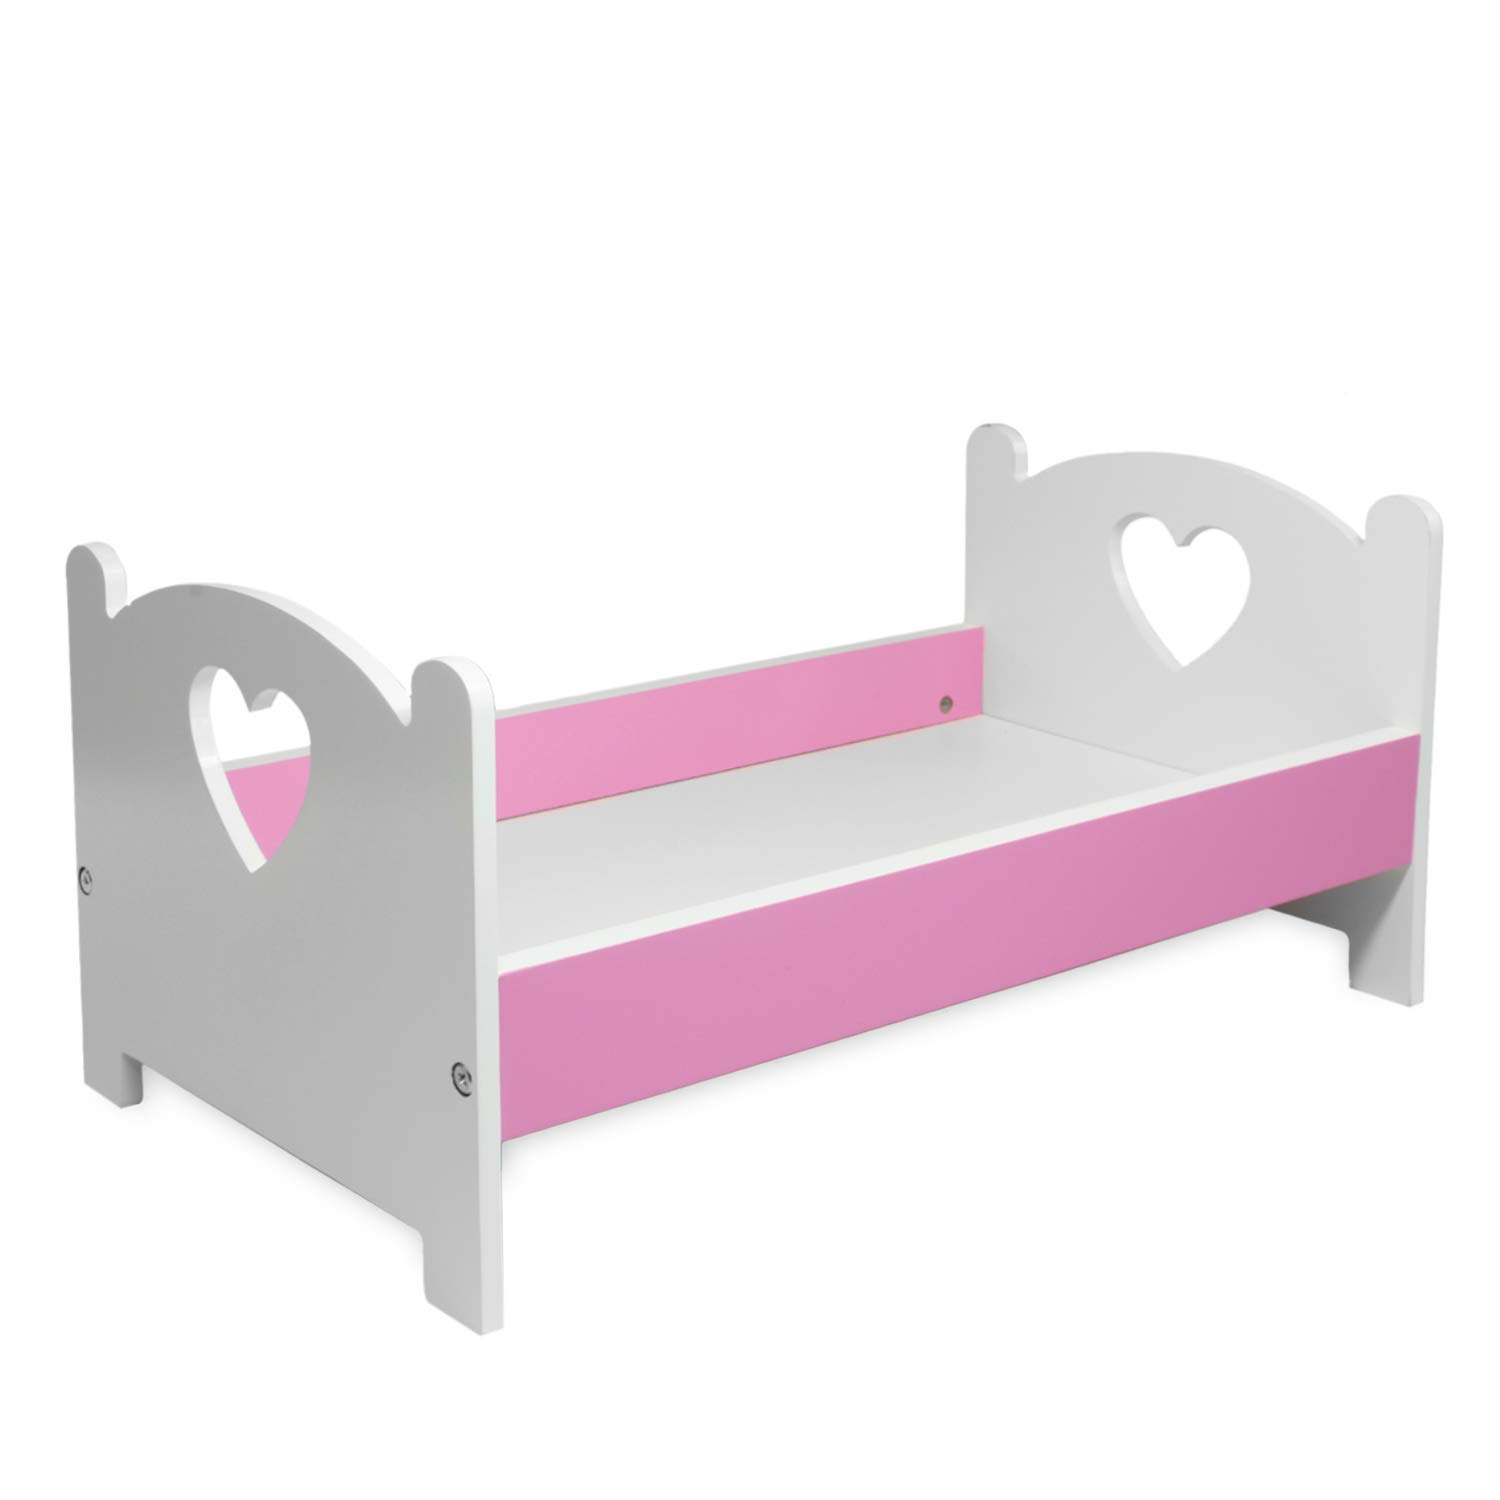 pink butterfly closet doll bed furniture fits american girl dolls my life doll our generation and other 18 inches dolls rh walmart com